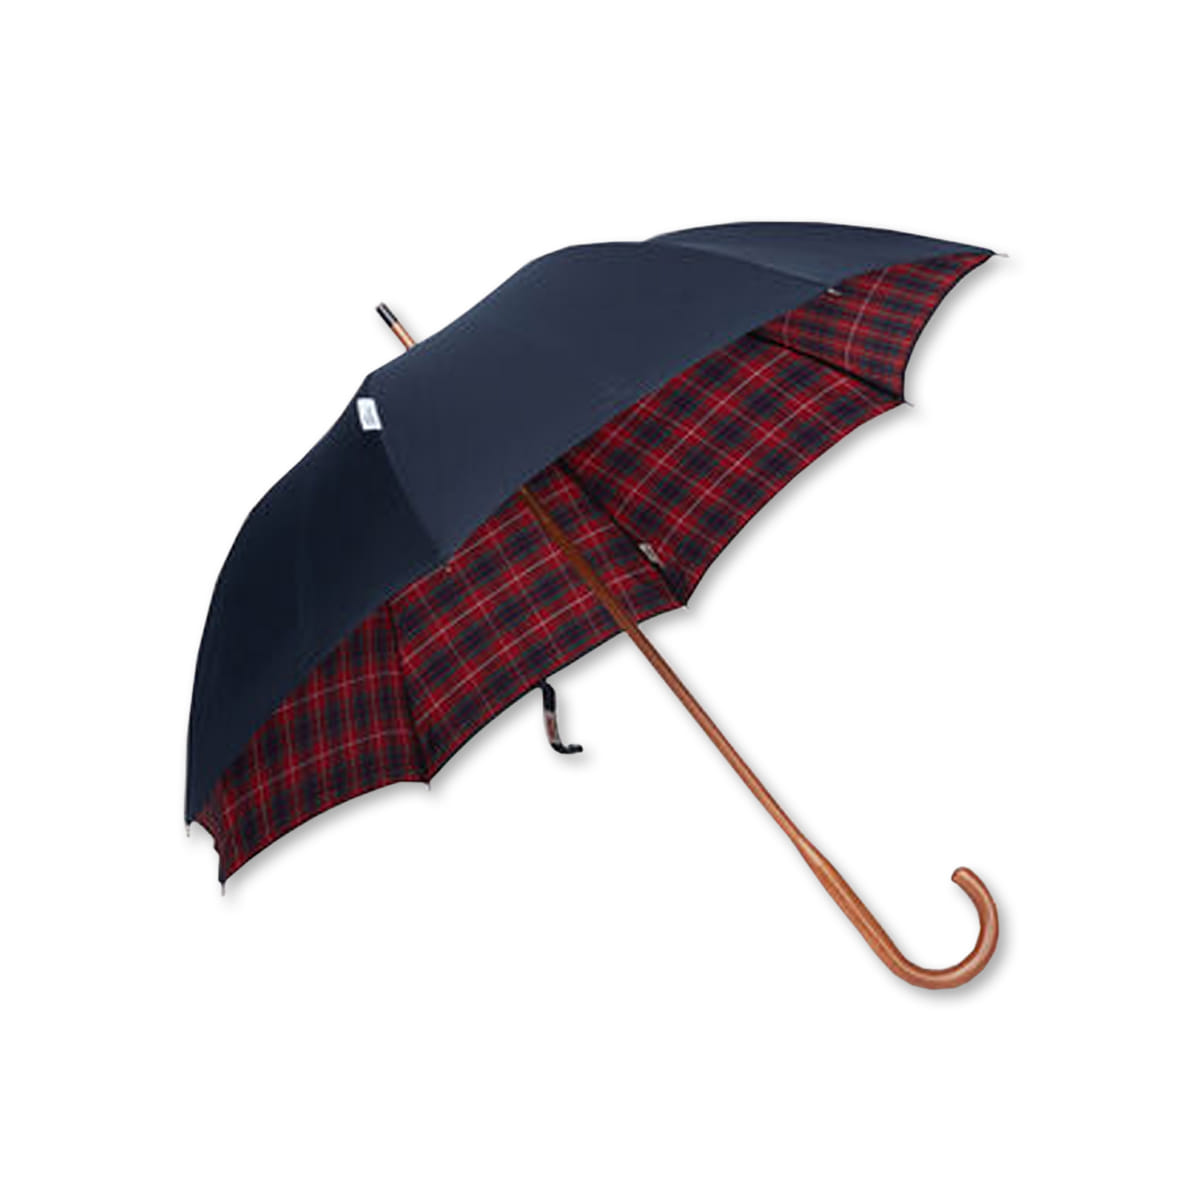 [BARACUTA] UMBRELLA LONDON UNDERCOVER 'NAVY'